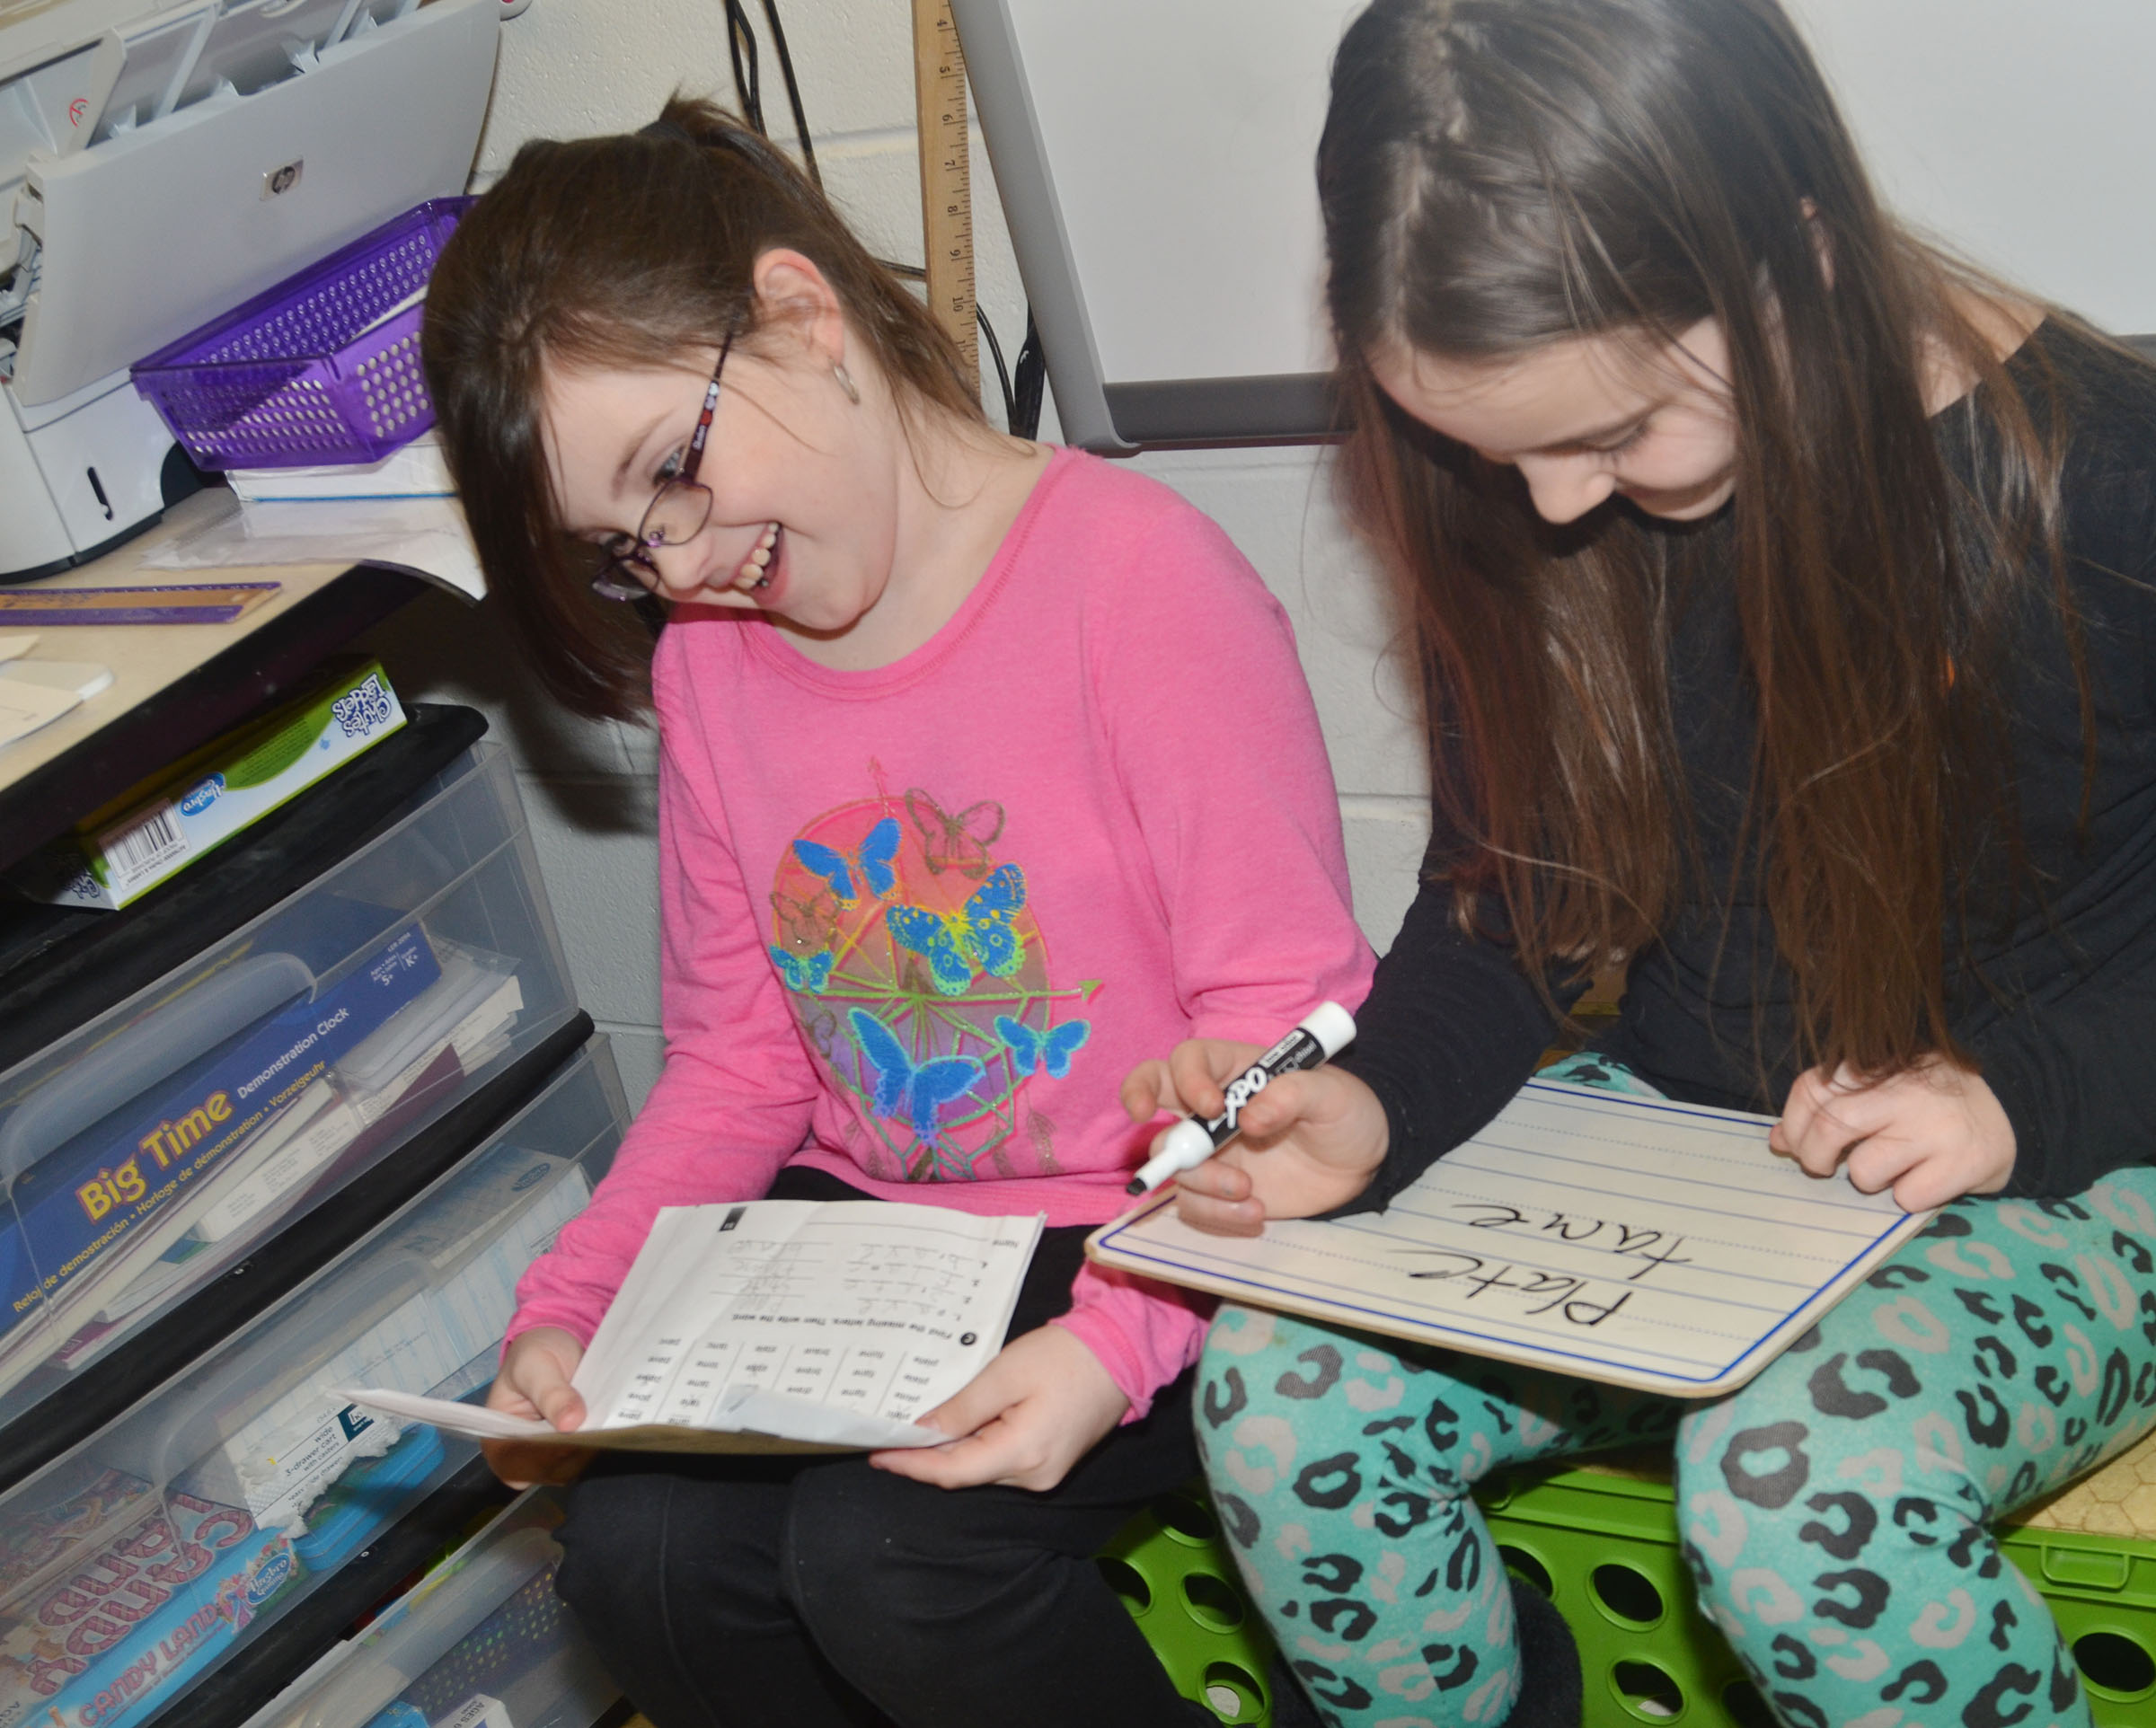 CES third-graders Lauren Pace, at left, and Alexis Roddy practice writing their sight words with dry erase markers and a board.